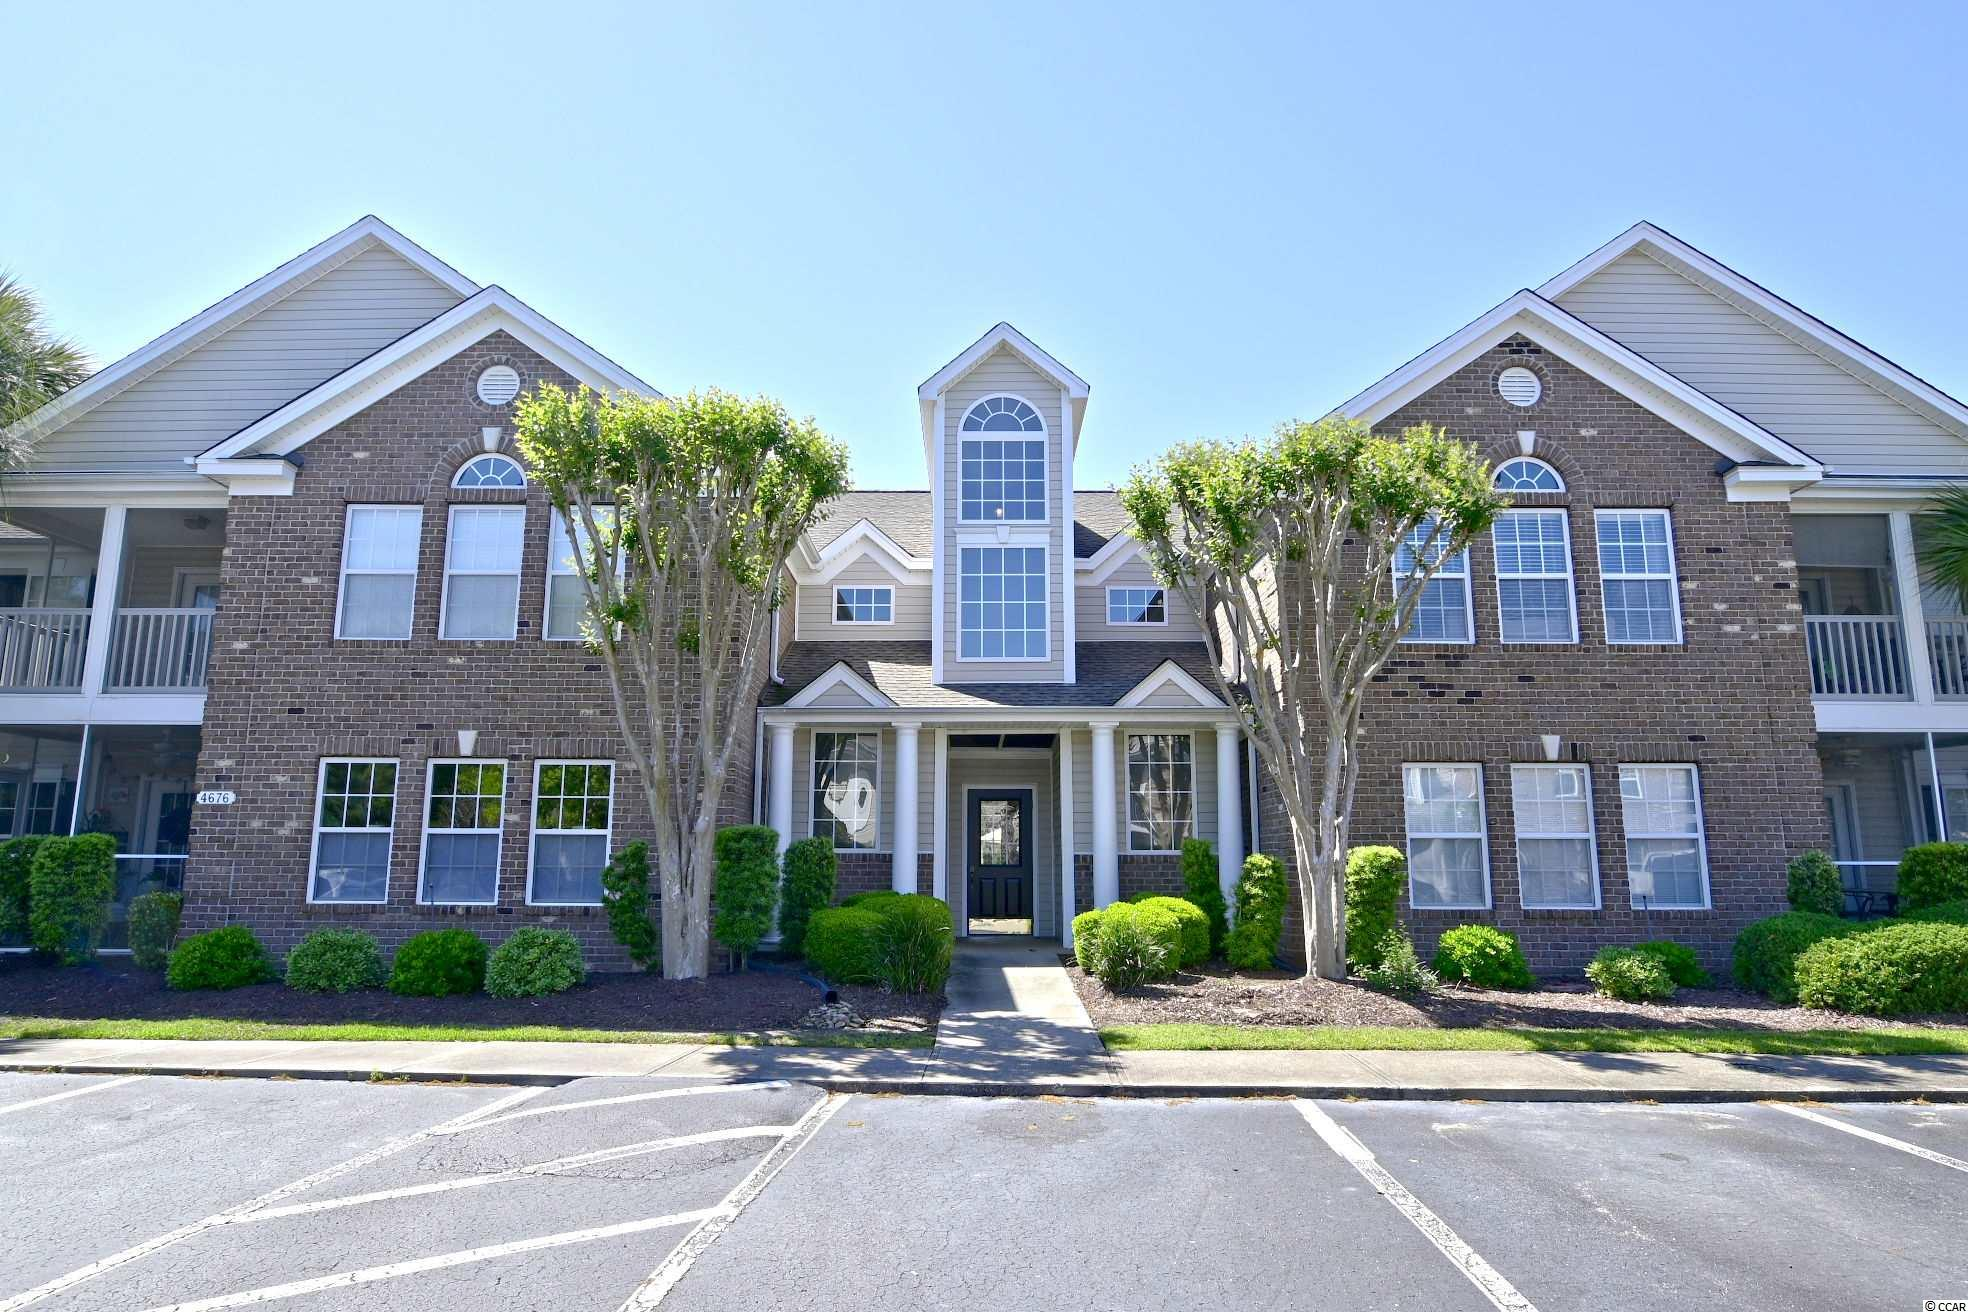 This 3 bedroom and 2 bath condo is located in a gated golf course community.  Always a second home and never rented, this meticulously maintained home overlooks the 4th tee box of the awarding winning Wachesaw Plantation East golf course and just steps away from the pool! Spacious living room offers an abundance of natural light & the cathedral ceiling adds to the airy, open feel.  Brand new carpet throughout! Enjoy the  golf course views and a private screen porch surrounded by palm trees! The kitchen has upgraded maple cabinets w/ slide out lower shelves plus a walk-in pantry, new microwave oven and upgraded faucet.  Owners had new HVAC & water heater installed 2018. Utility room with full sized washer & dryer.  Community amenities include 24/7 security, gated access, two pools, tennis courts, walking/biking trails, and a fitness room.  One of the pools is reserved for the exclusive use of the Winchester condo residents and their guests.   Located in Murrells Inlet, this community is just about a mile from restaurant row, the MarshWalk, Brookgreen Gardens, the pristine, natural beach at Huntington Beach Sate Park, N Litchfield and Garden City Beach. Extensive medical facilities including Tideland Hospital are just outside the front gate.  Don't wait - Your LowCountry Lifestyle is beckoning!  (Square footage is approximate and not guaranteed.  Buyer is responsible for verification.)